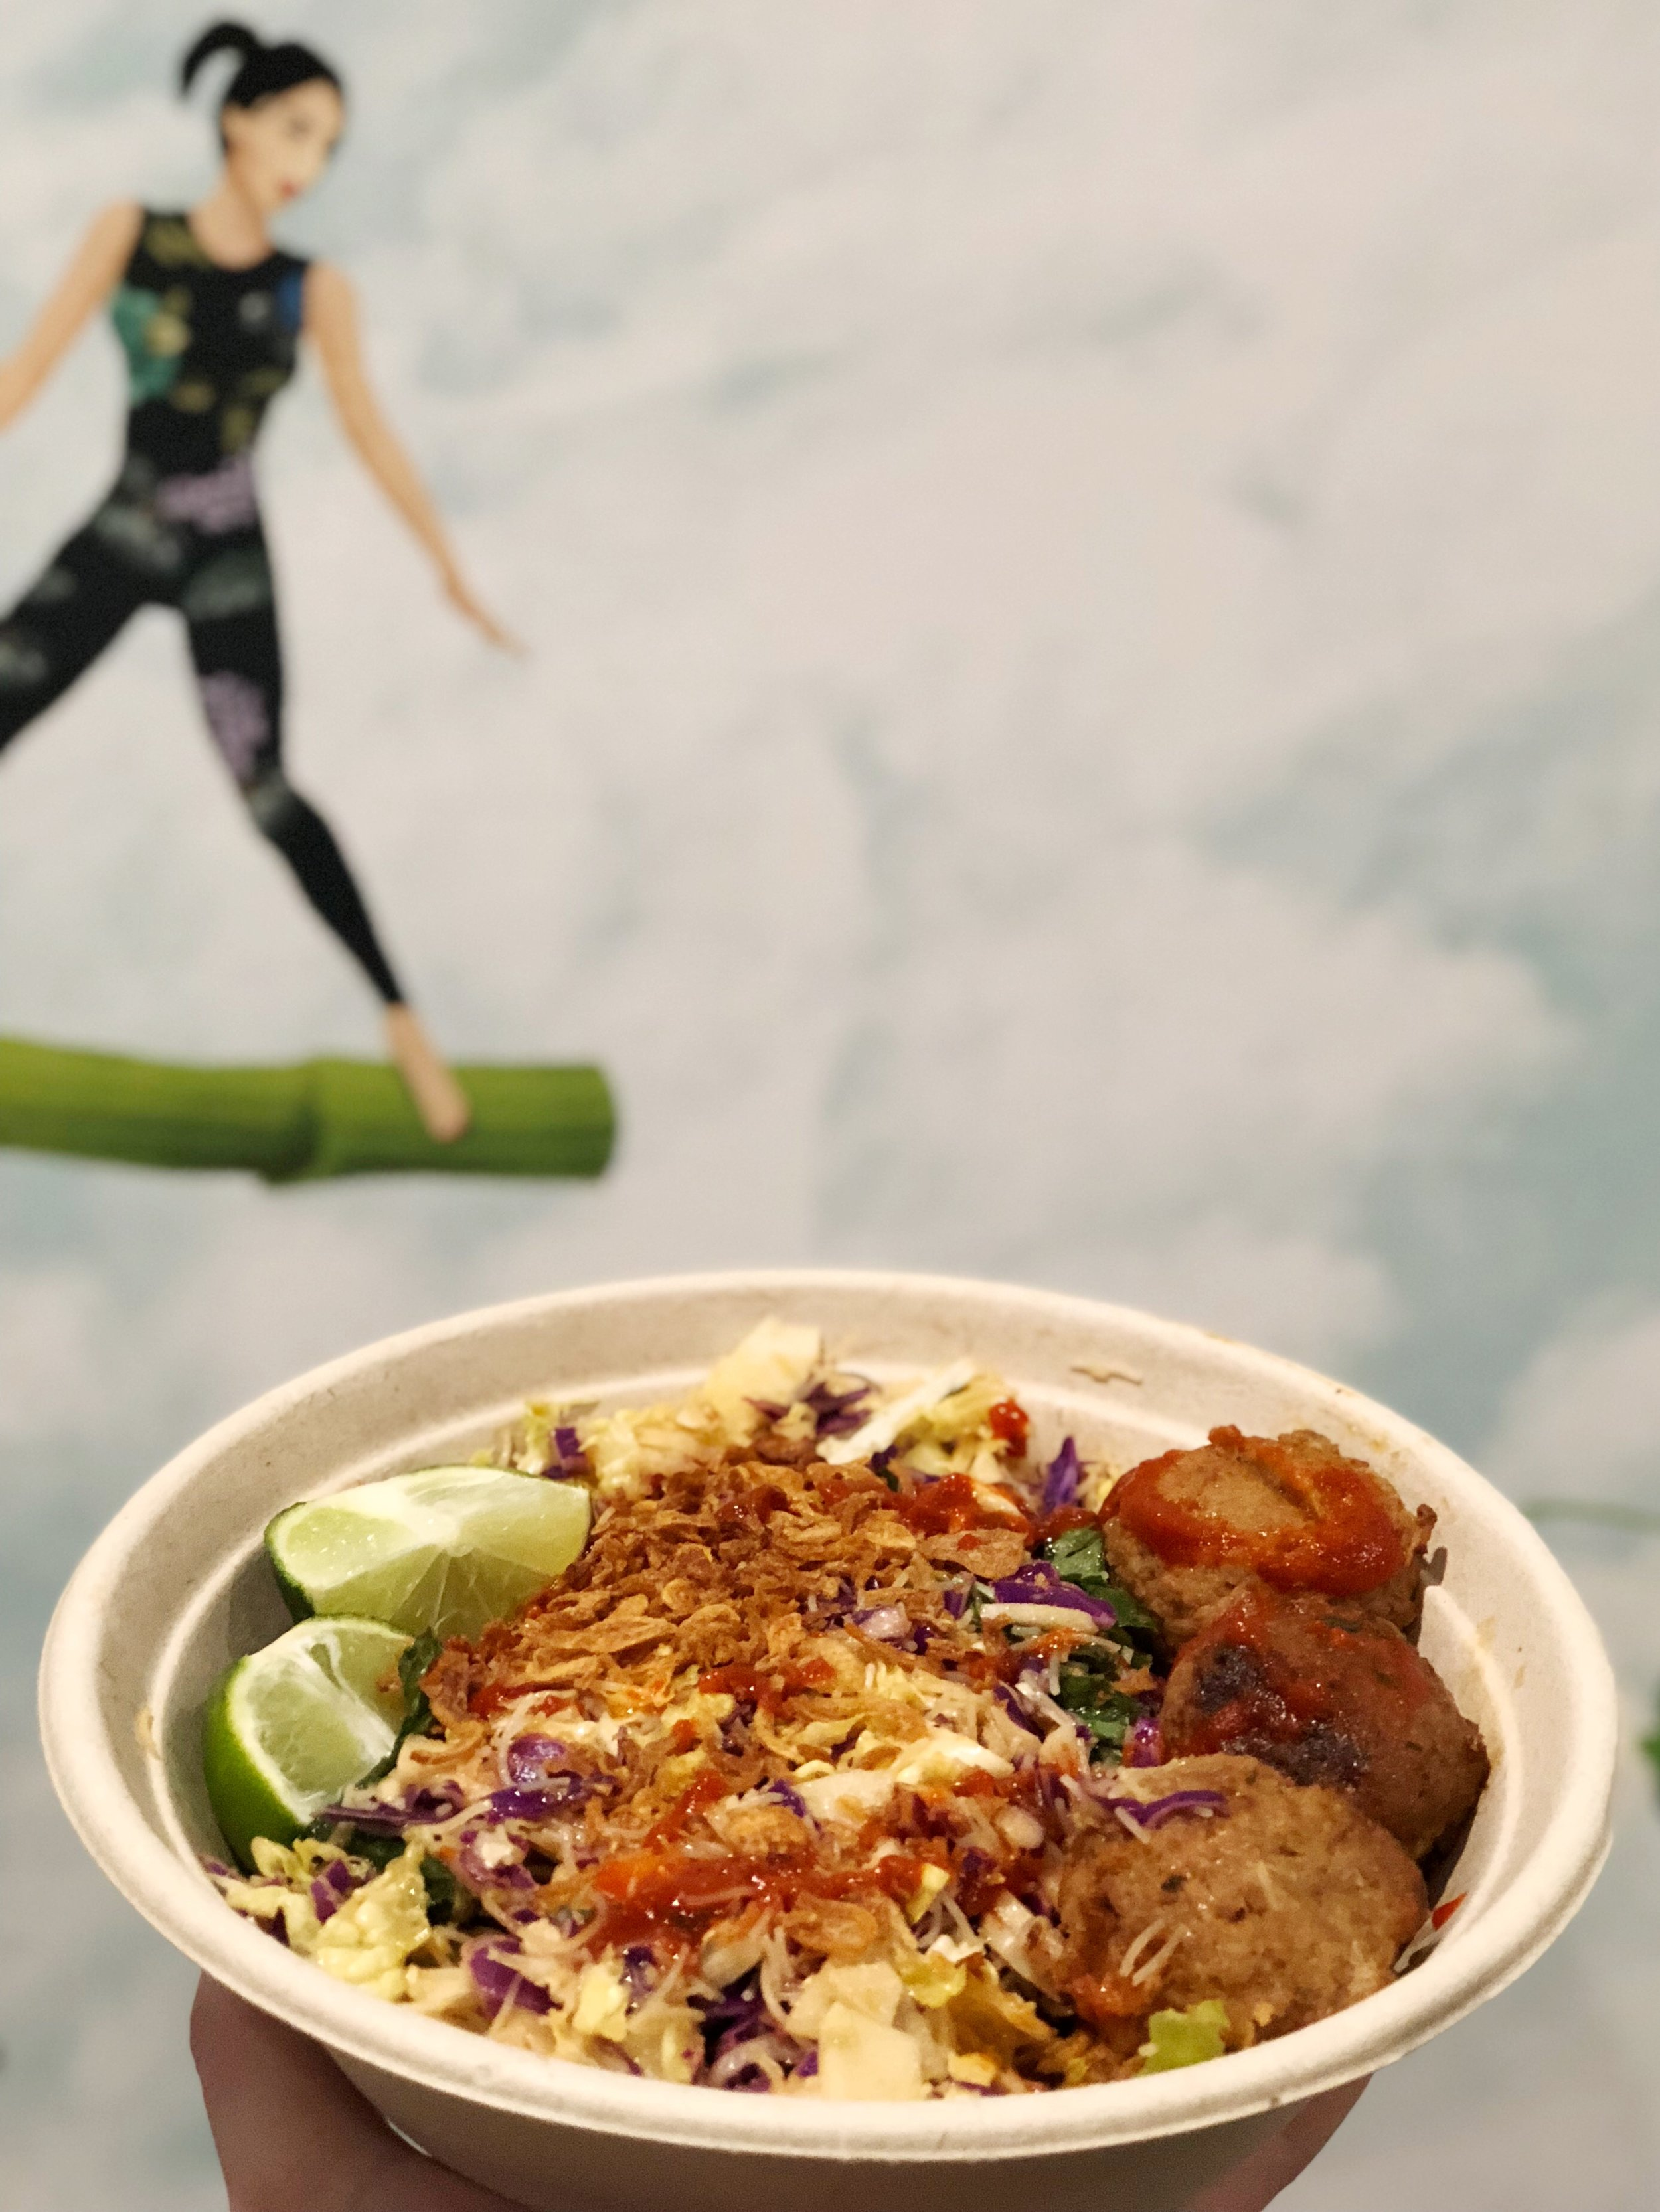 VIETNAMESE MEATBALL NOODLE BOWL:Warm lemongrass turkey meatballs, chilled rice noodles, pickled hearts of palm, English cucumbers, crispy shallots, cabbage & herb blend,SPICY TAMARIND VINAIGRETTE,A DRIZZLE OF SRIRACHA, and A WEDGE OF LIME. | c/o CHOPT